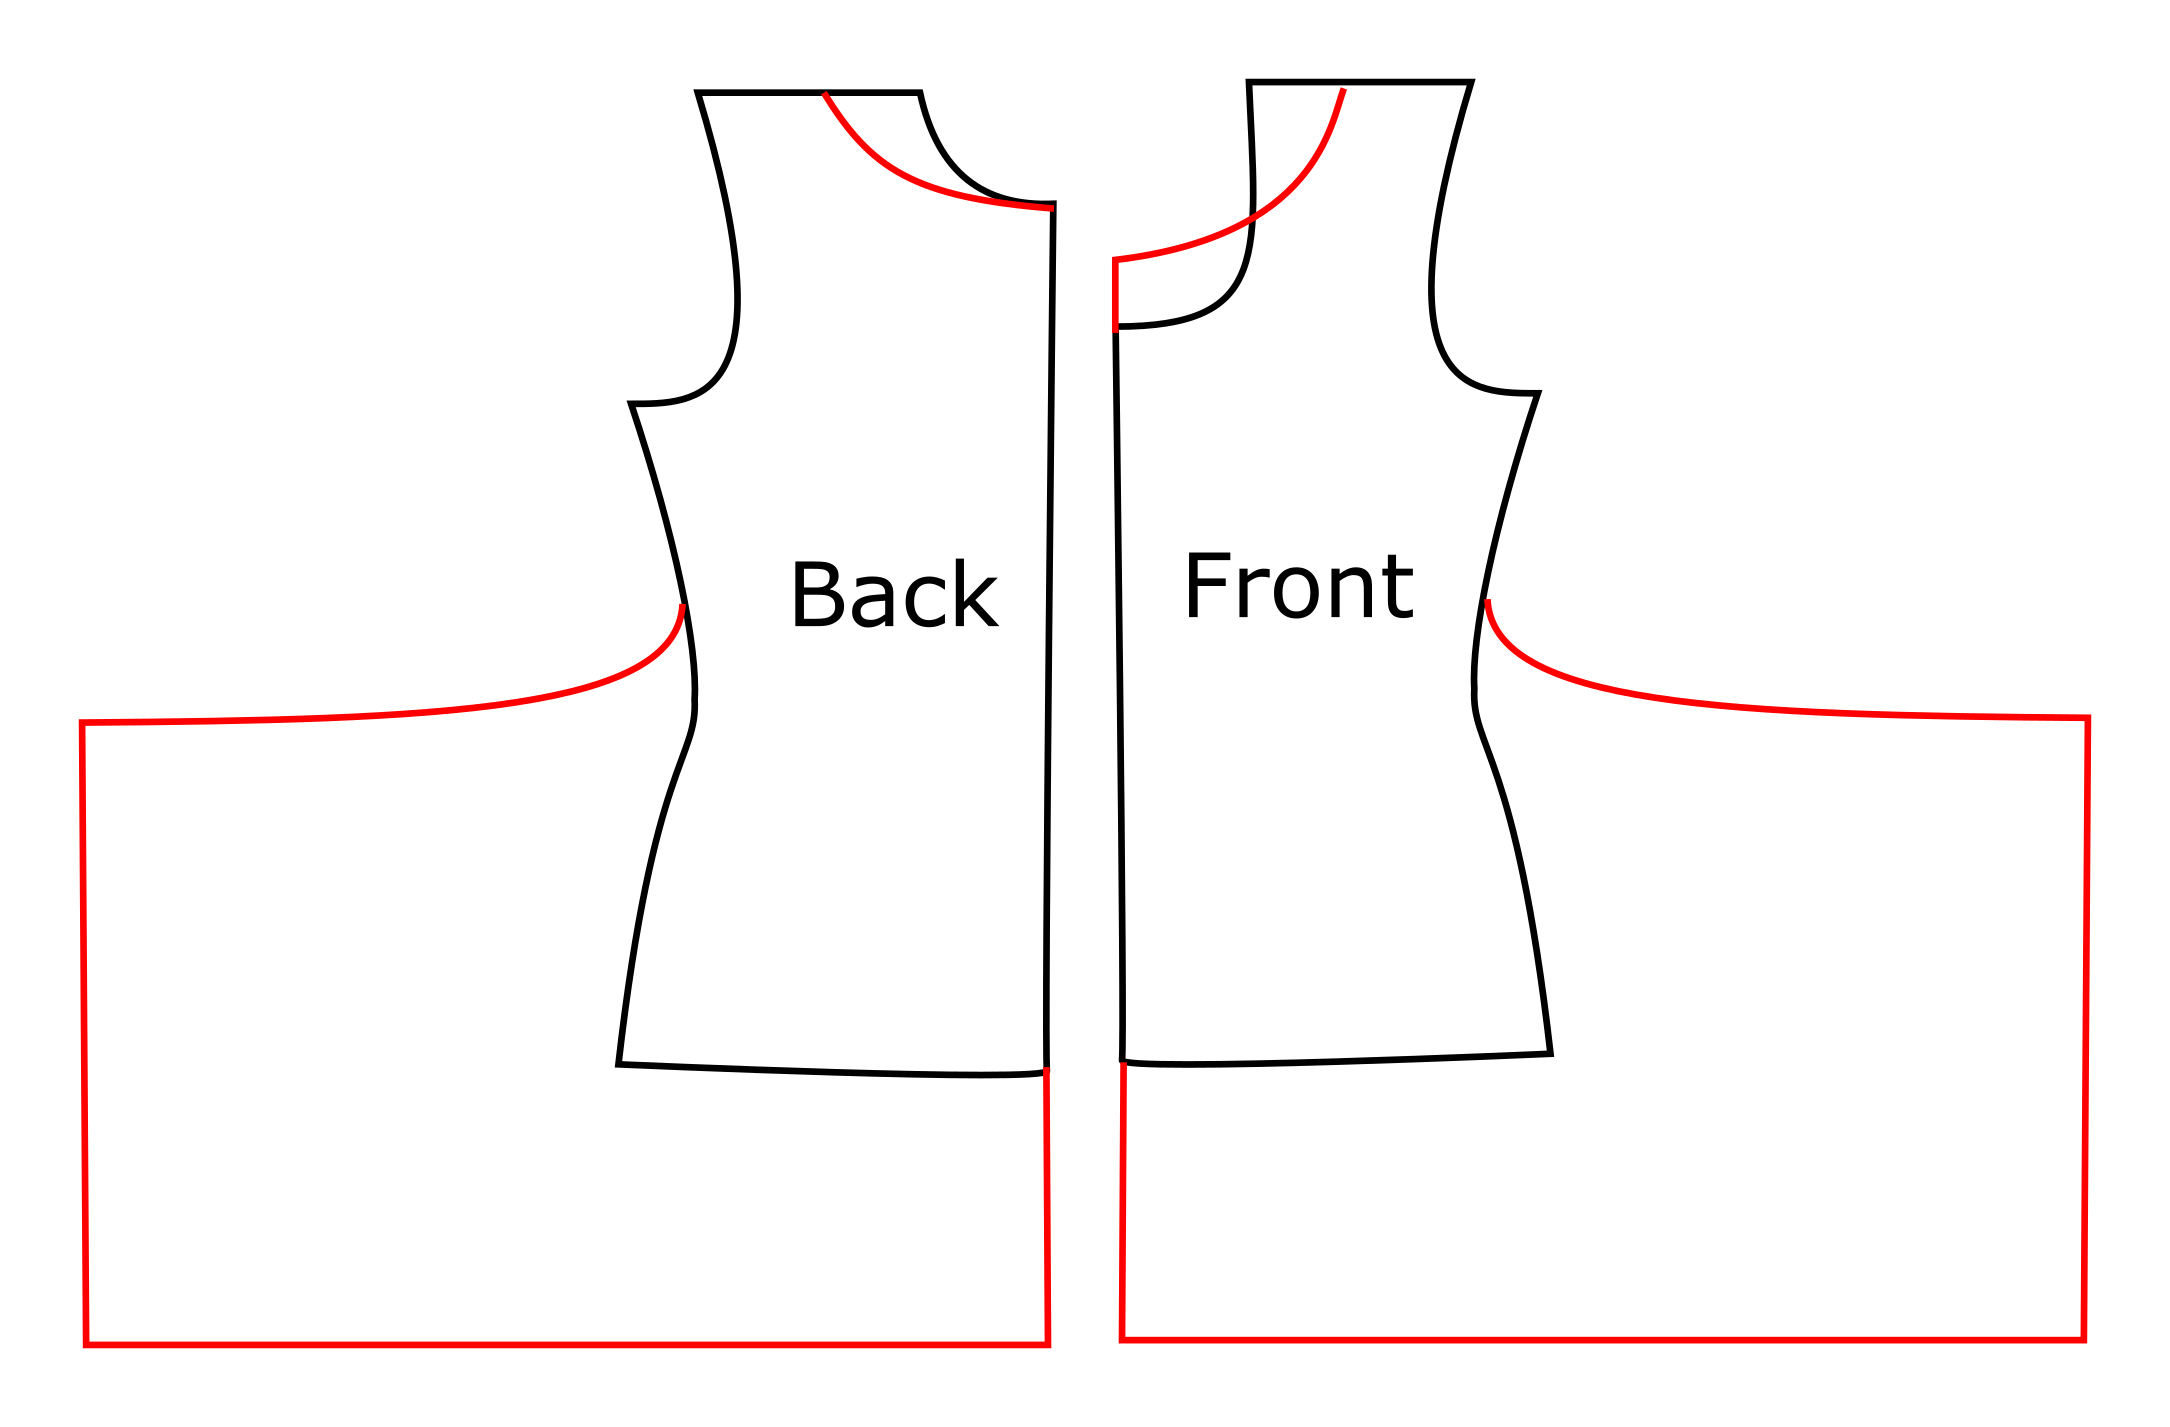 Swing dress schematic